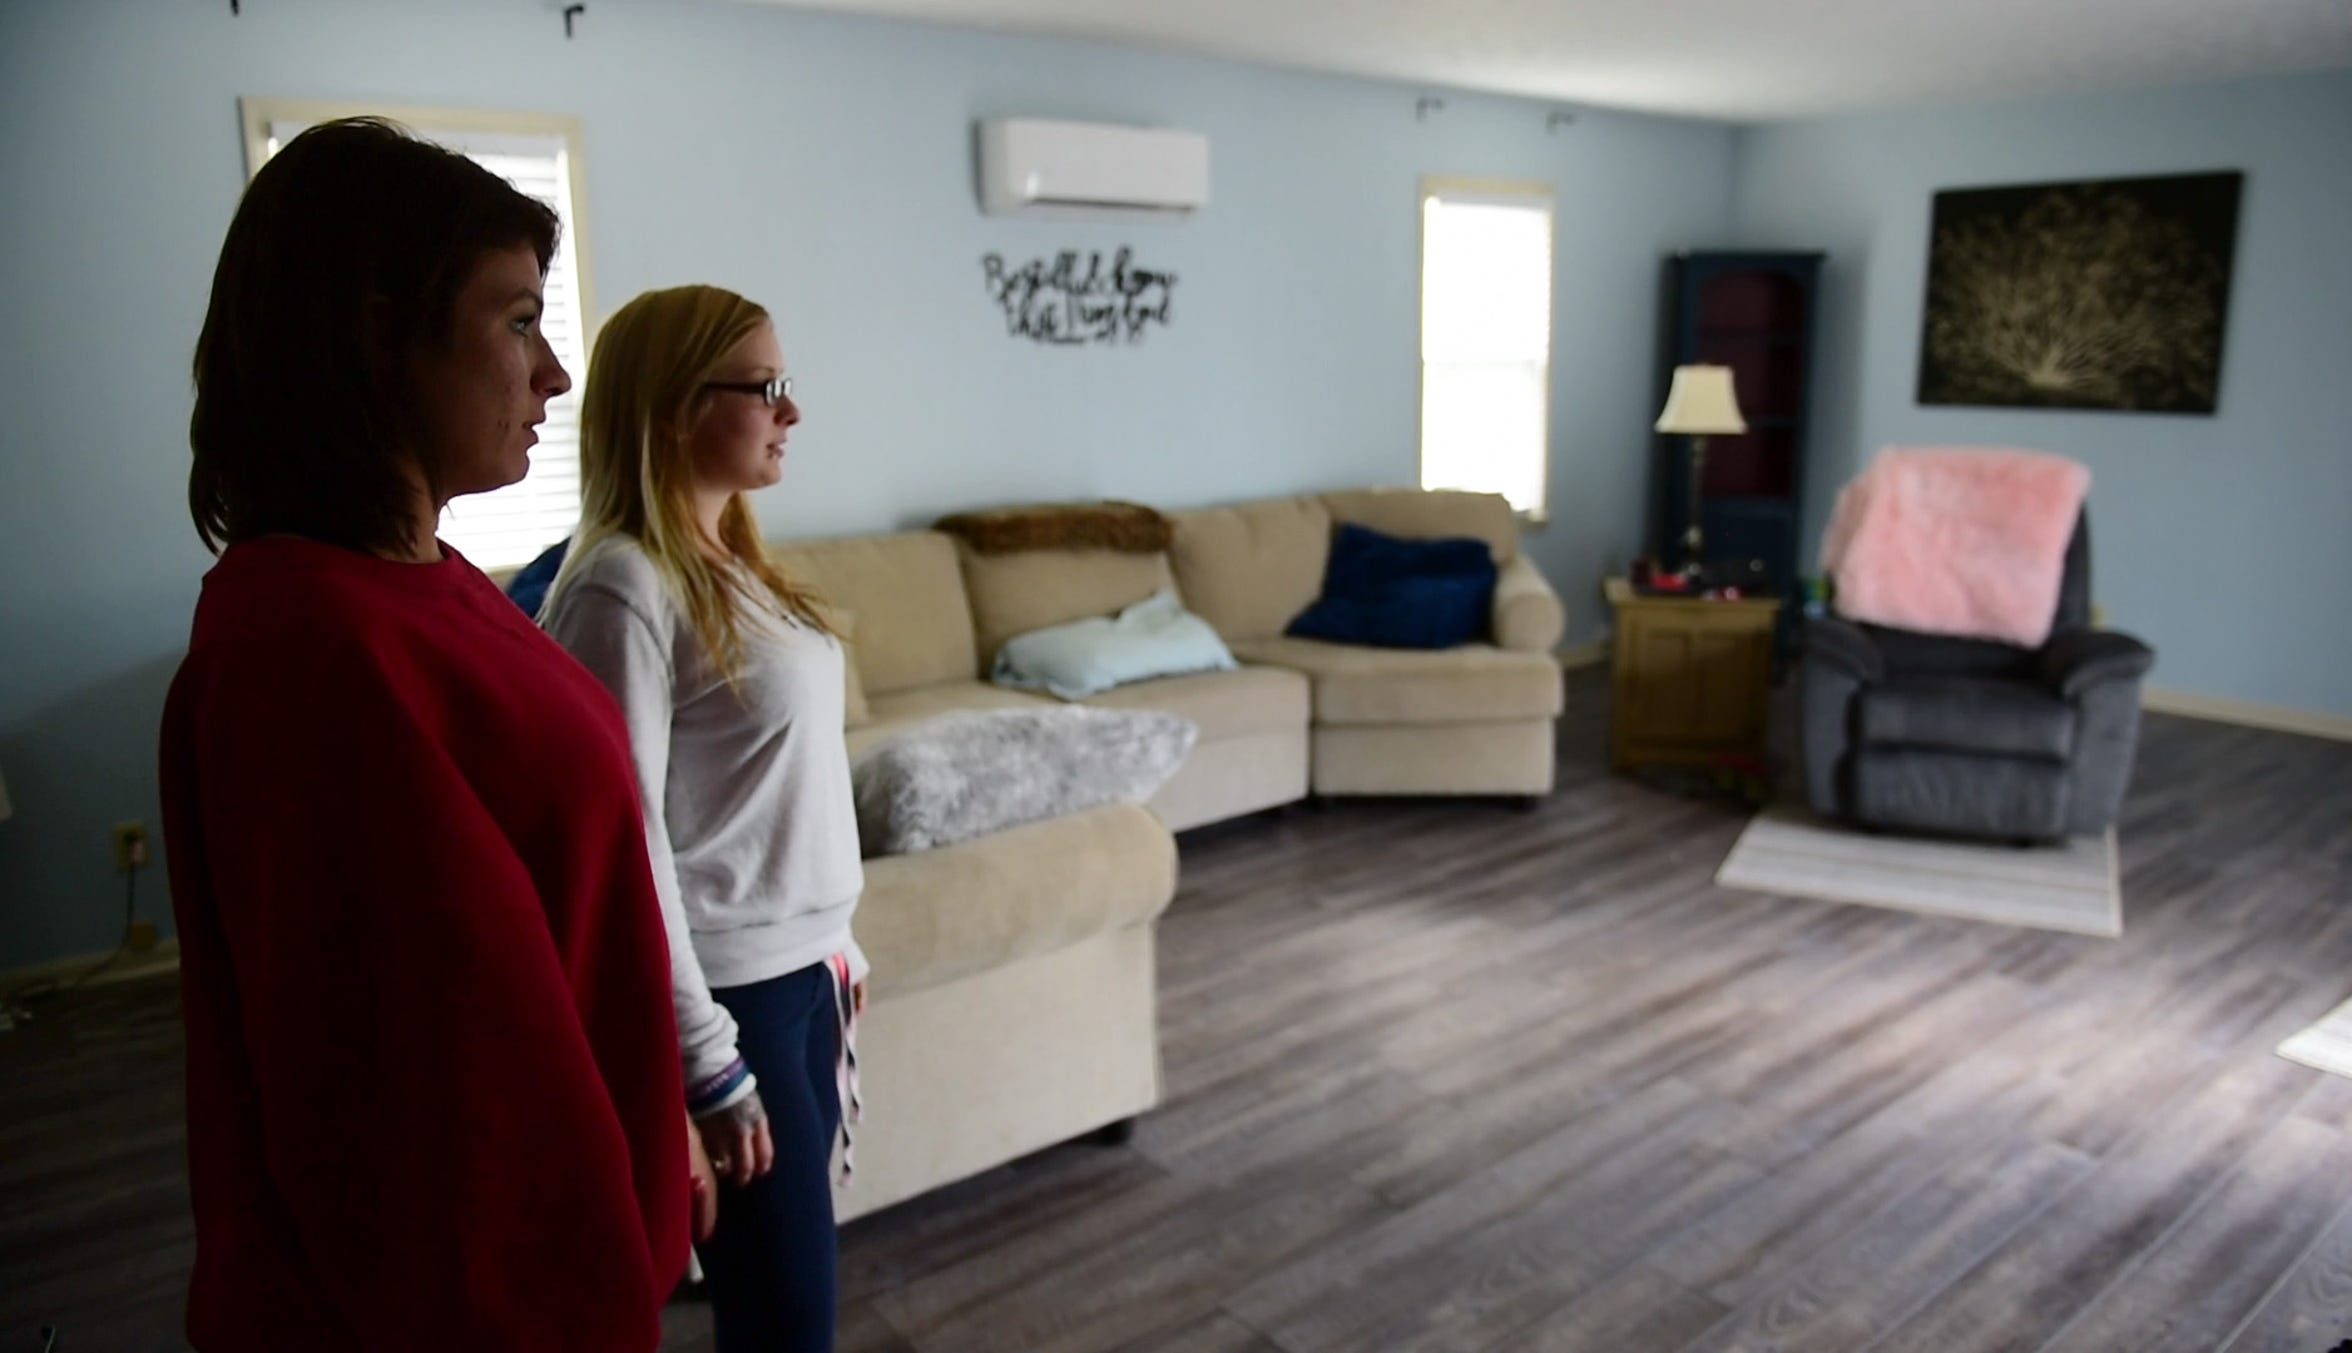 Recovering meth addict Ashley Ammerman, 23, left, and  recovering heroin addict Alexandria Lowery, 26, said they do chores around the house to keep their minds occupied and off off drugs. Residents are encouraged to attend counseling and meetings, meet others in recovery and get a job.